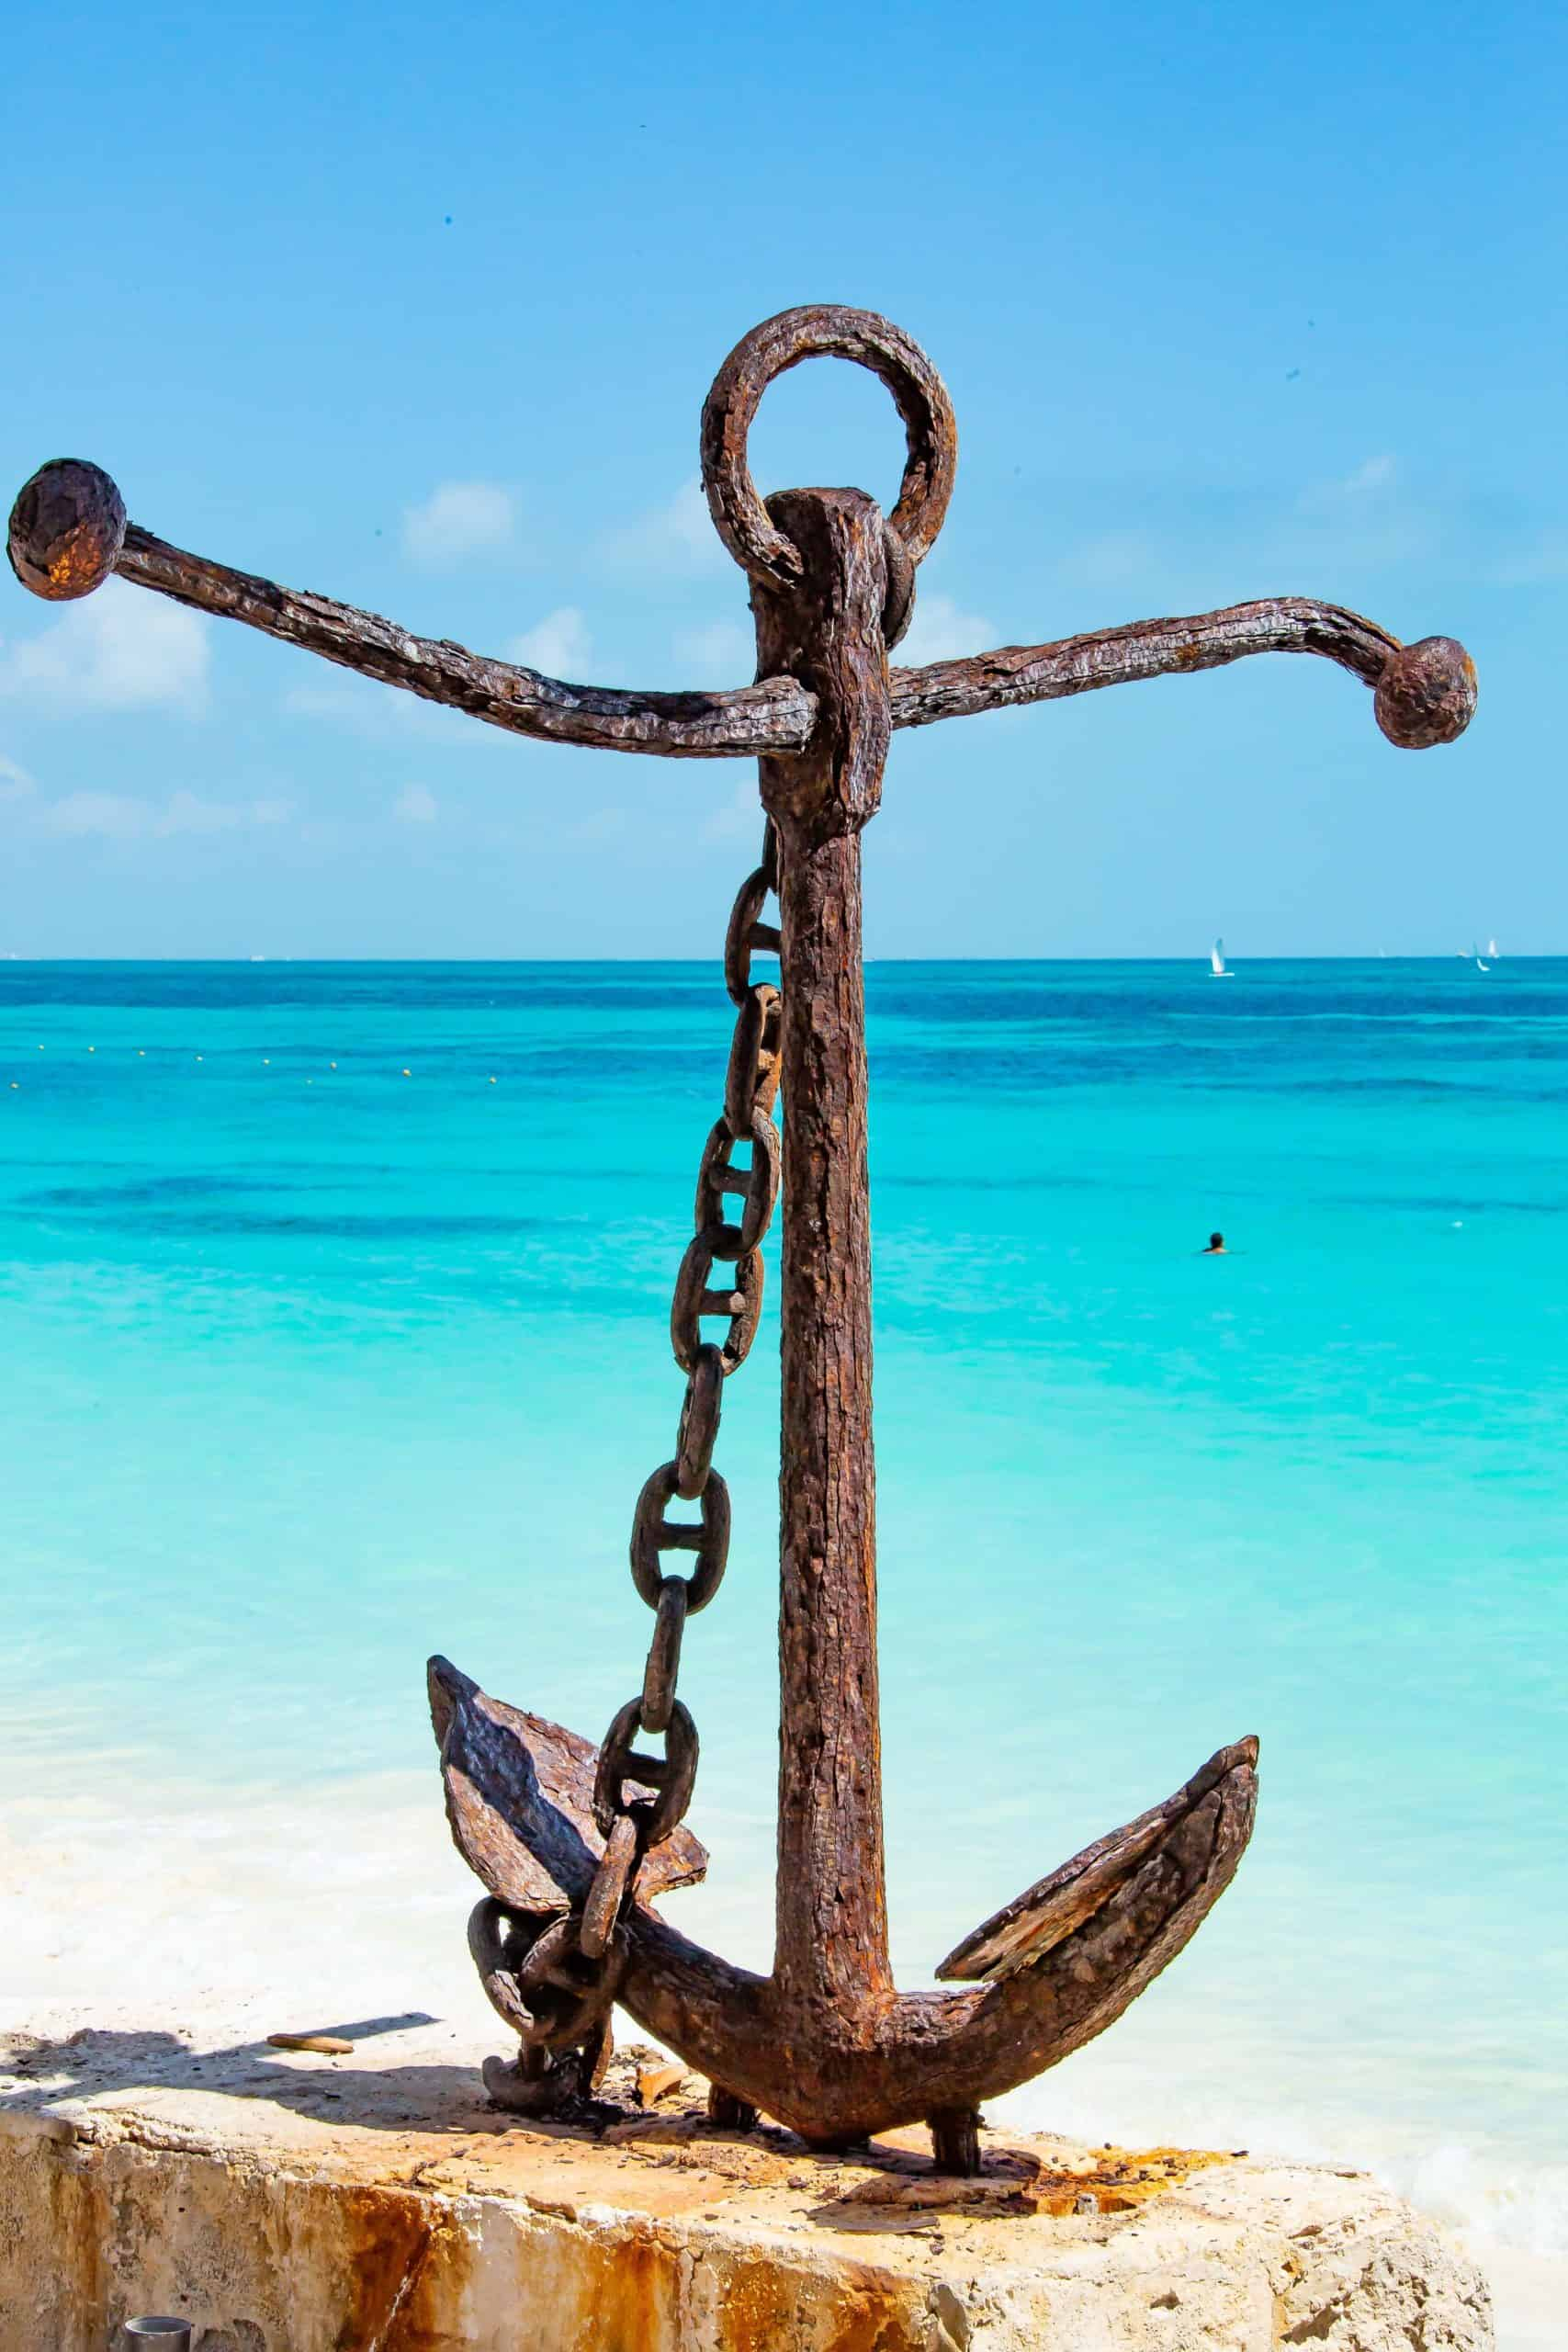 Choosing The Best Anchors For Your Needs